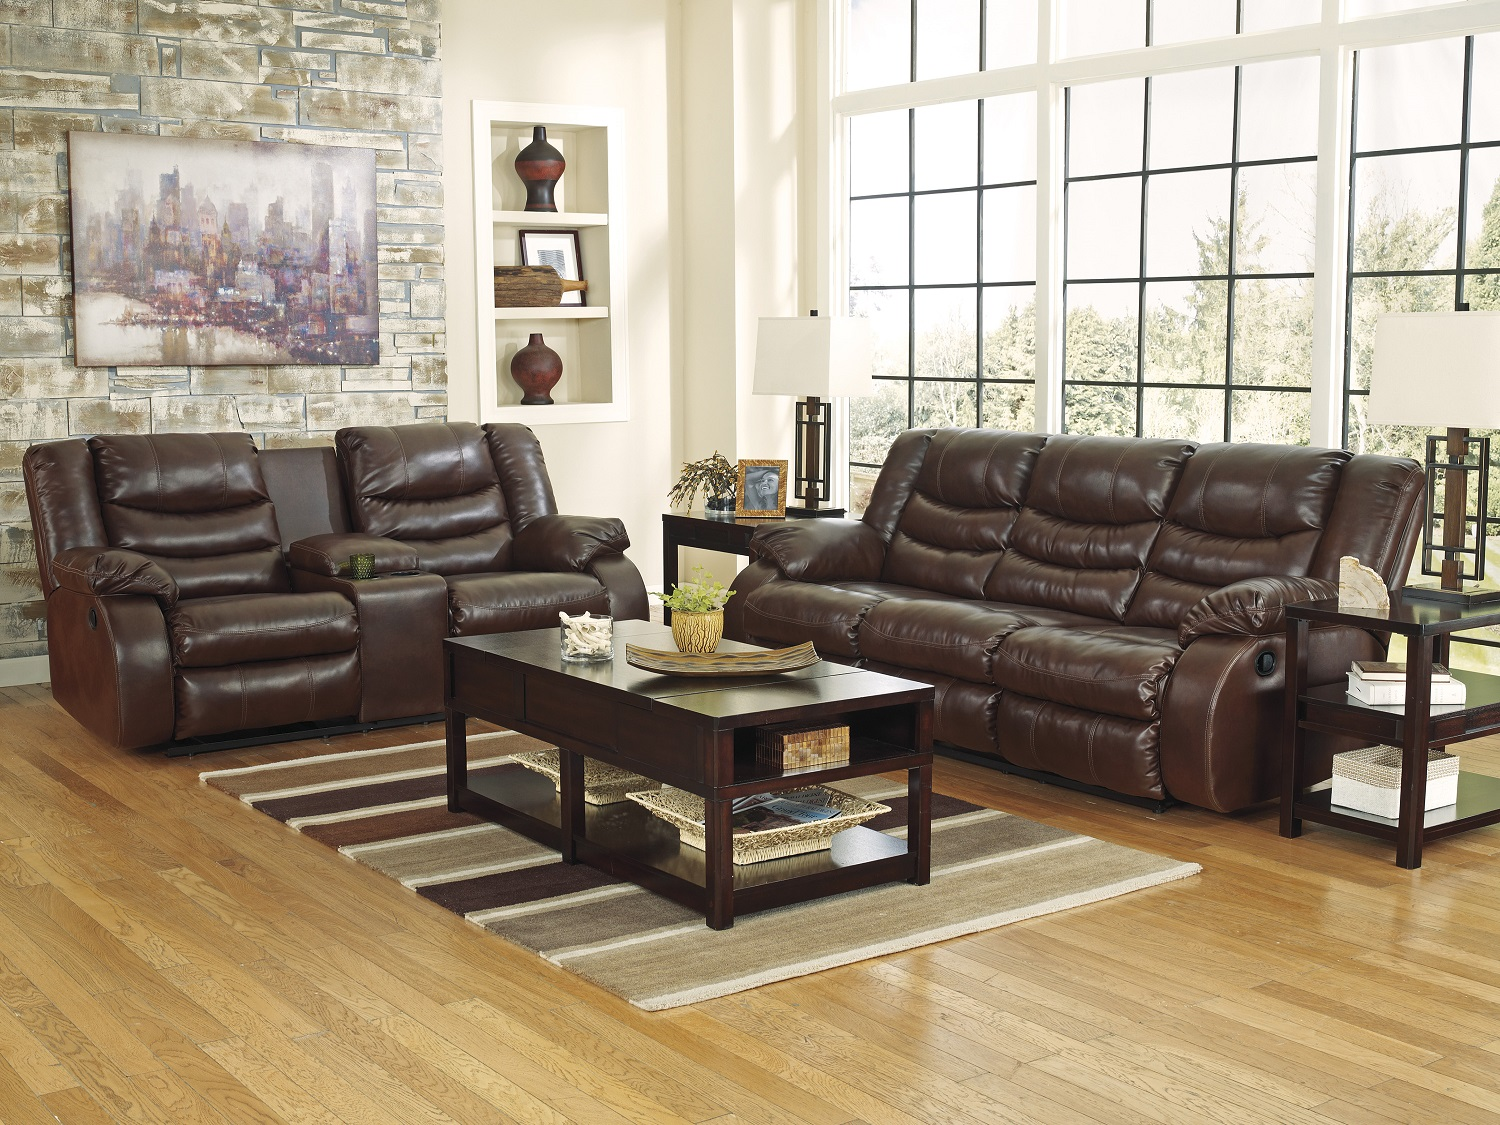 Linebacker, 952, Recliners by Midha Furniture to Brampton, Mississauga, Etobicoke, Toronto, Scraborough, Caledon, Oakville, Markham, Ajax, Pickering, Oshawa, Richmondhill, Kitchener, Hamilton and GTA area